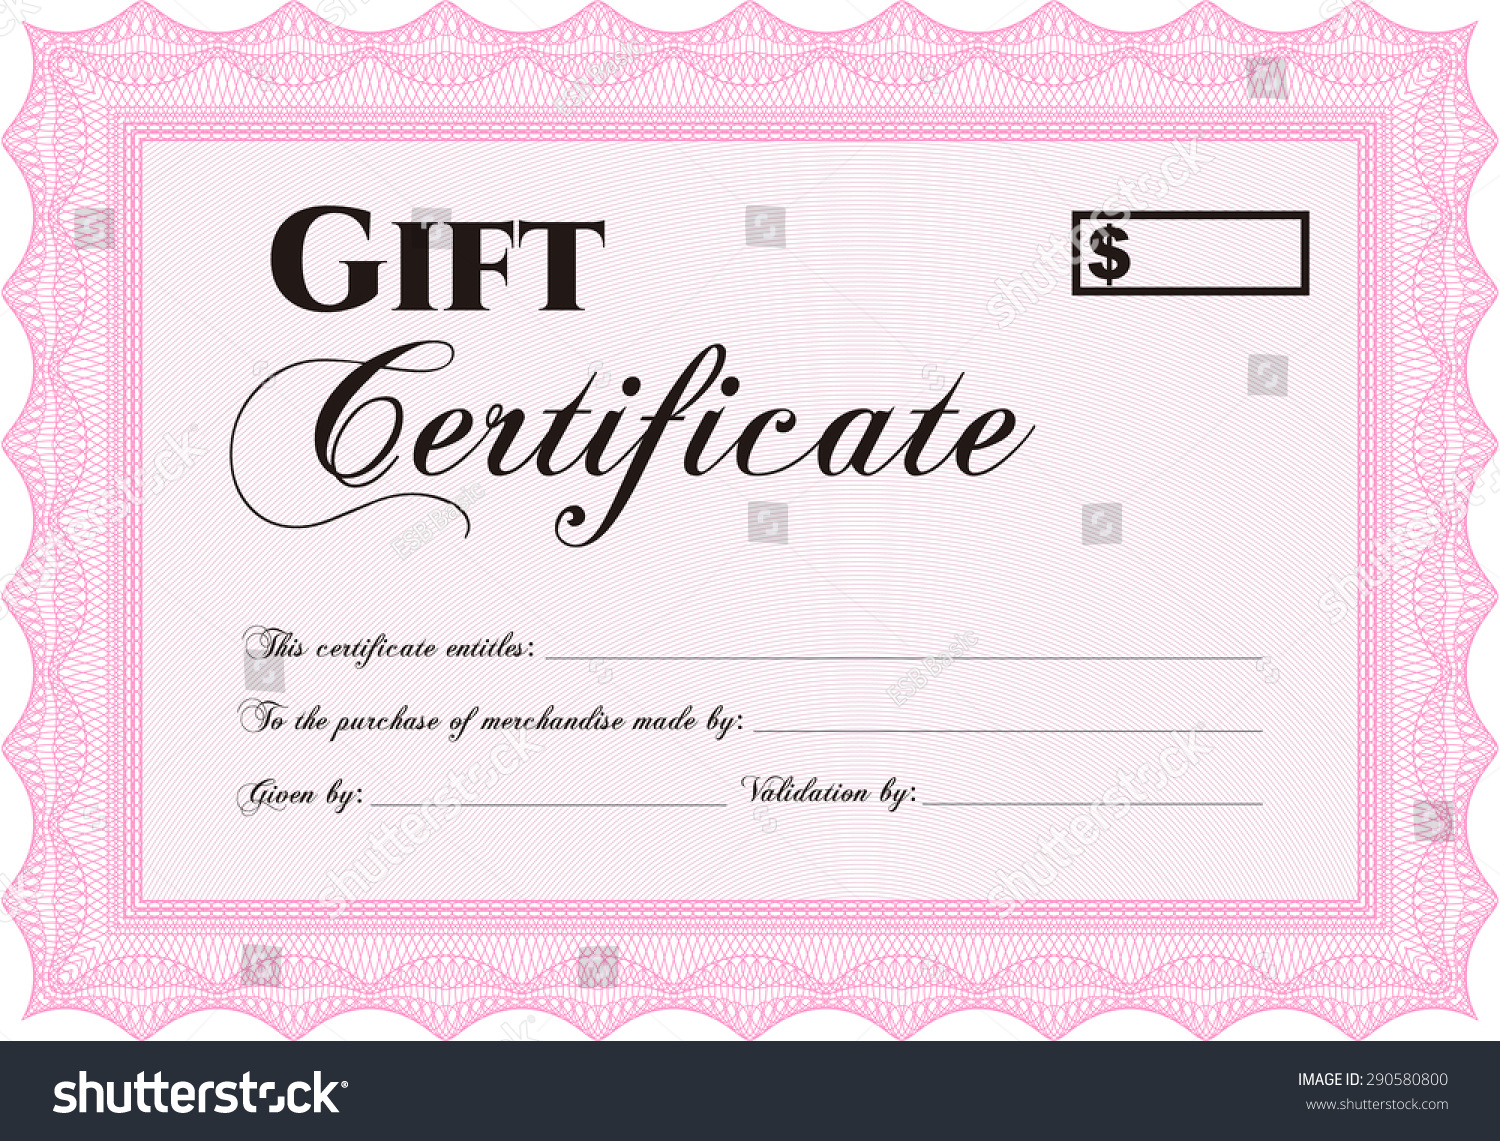 vector gift certificate border frame easy print stock vector